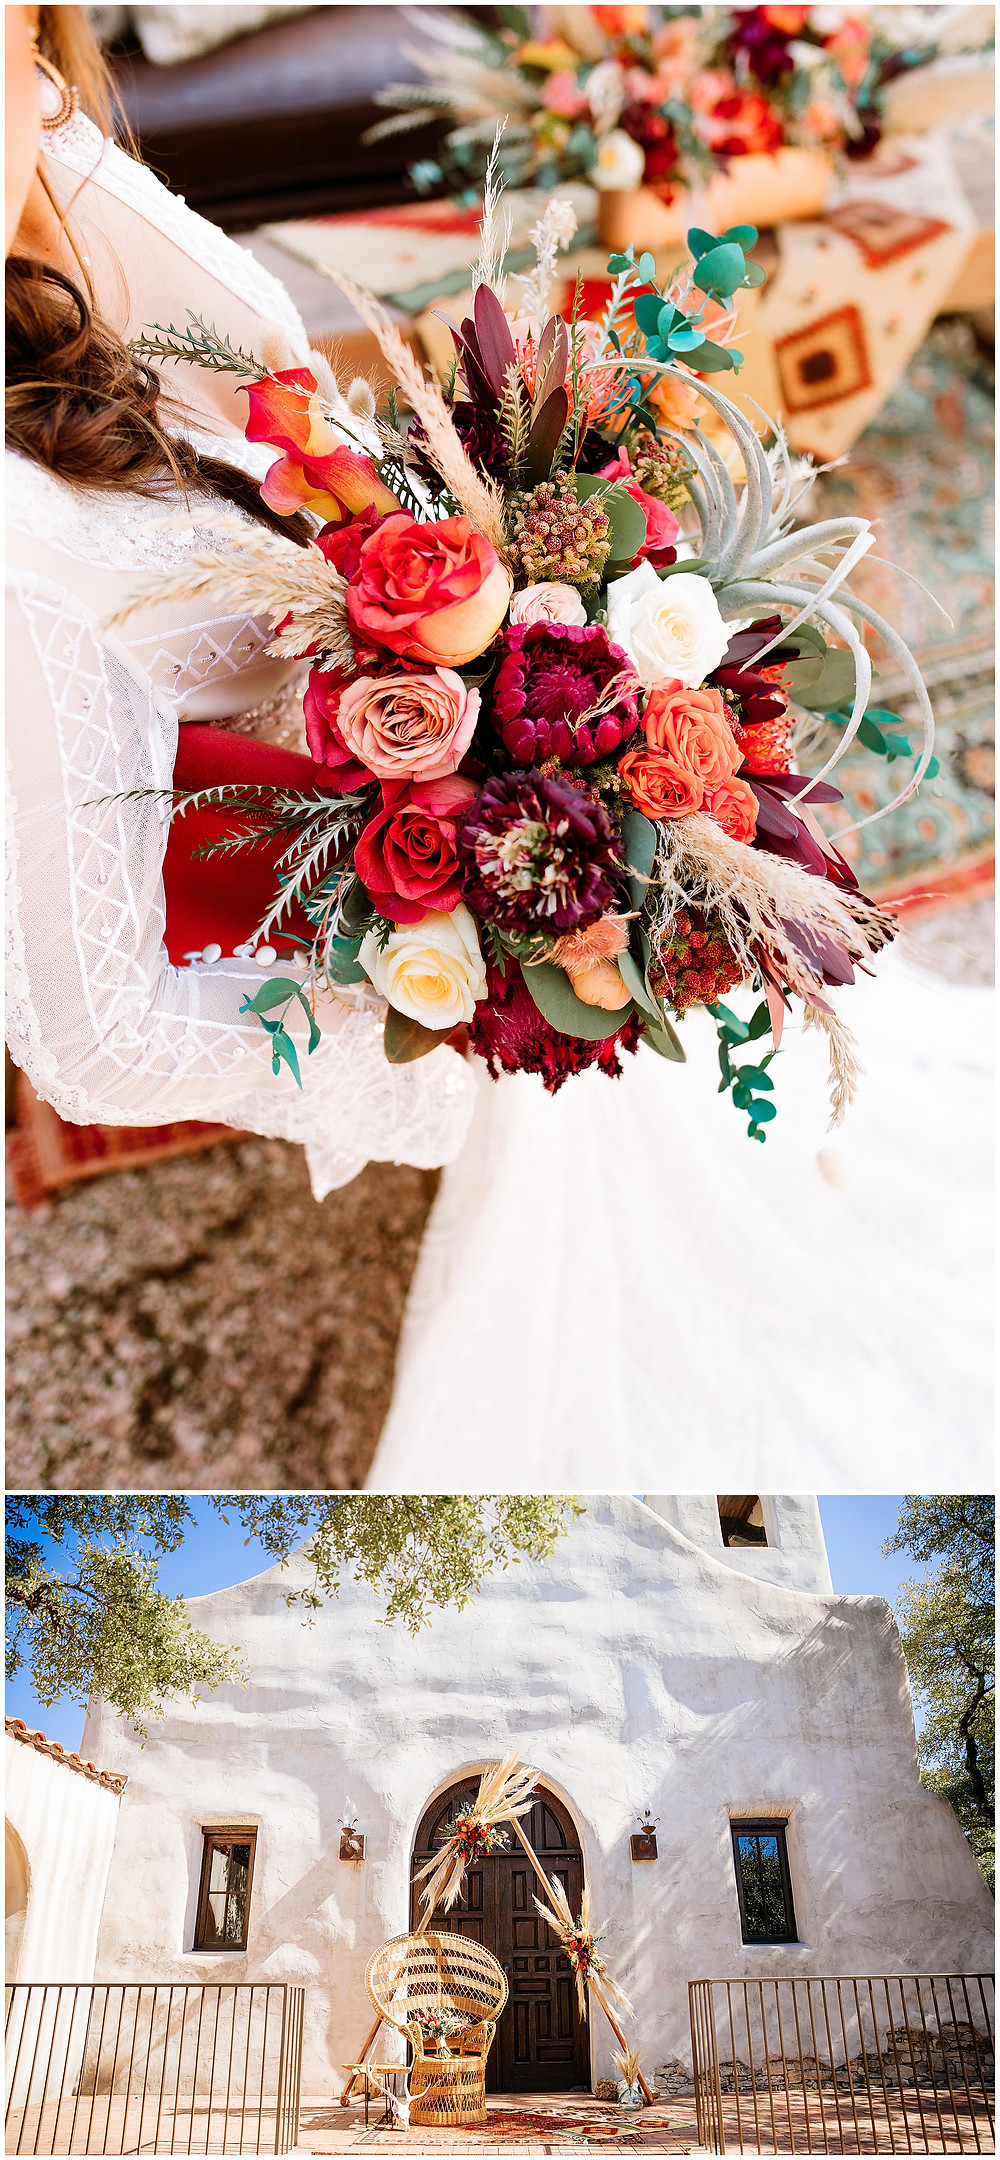 snap chic photography, southwest styled shoot, Texas hill country wedding photographer, Boerne Texas weddings, Orange and turquoise bridal bouquet